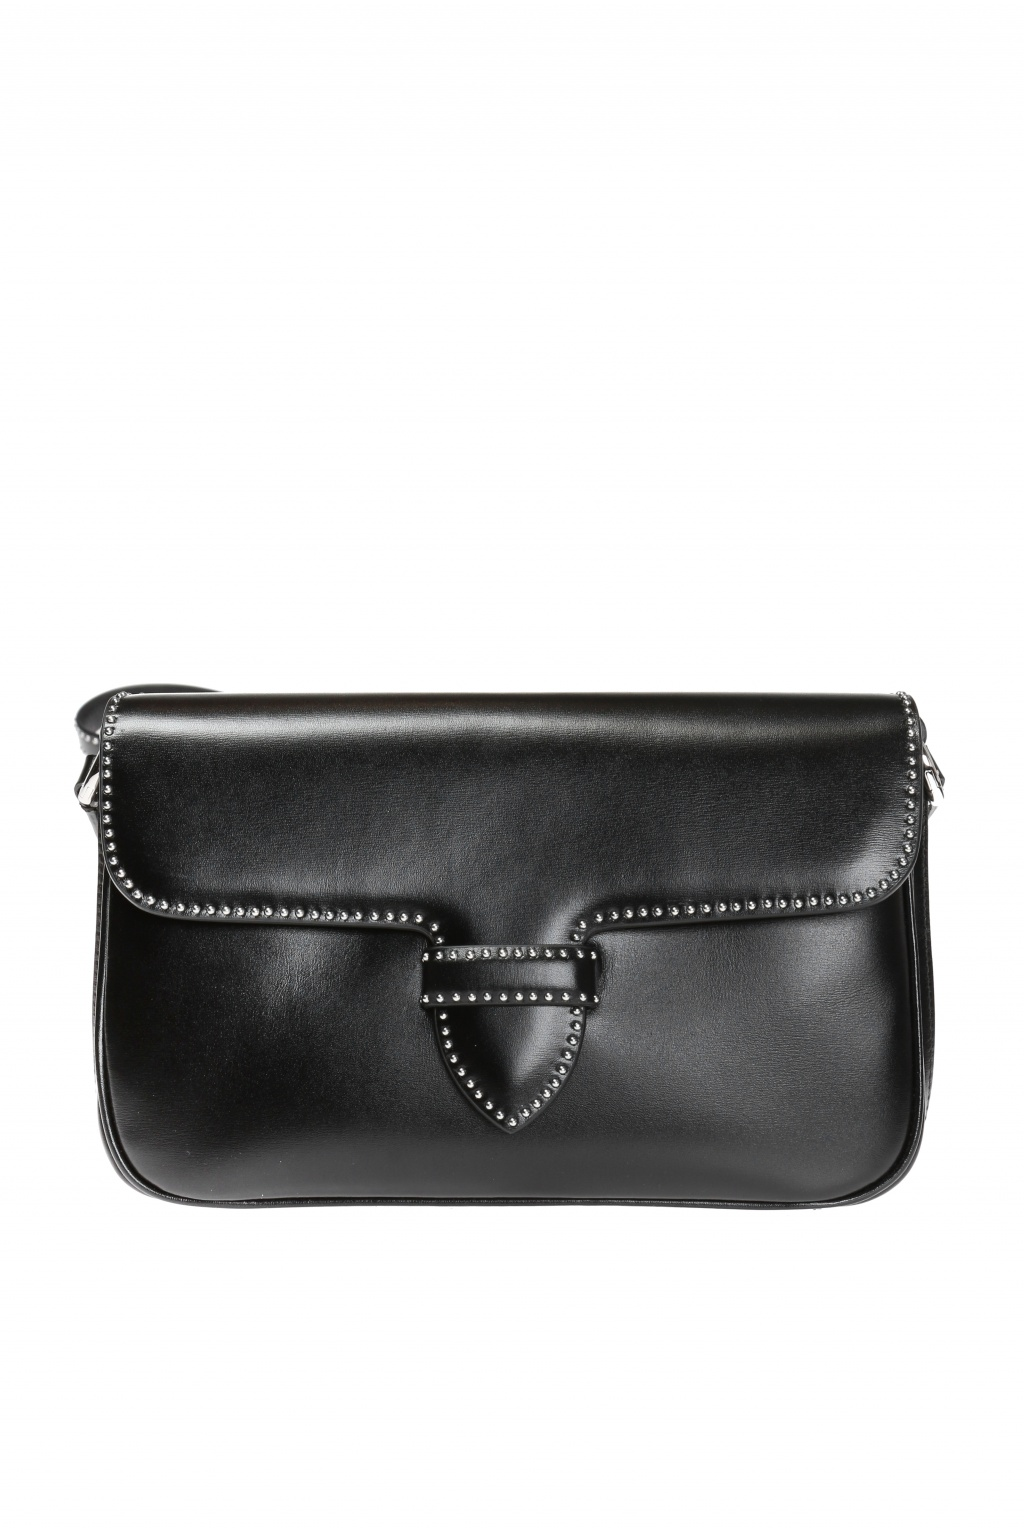 Alaia 'Bettina' reversible shoulder bag